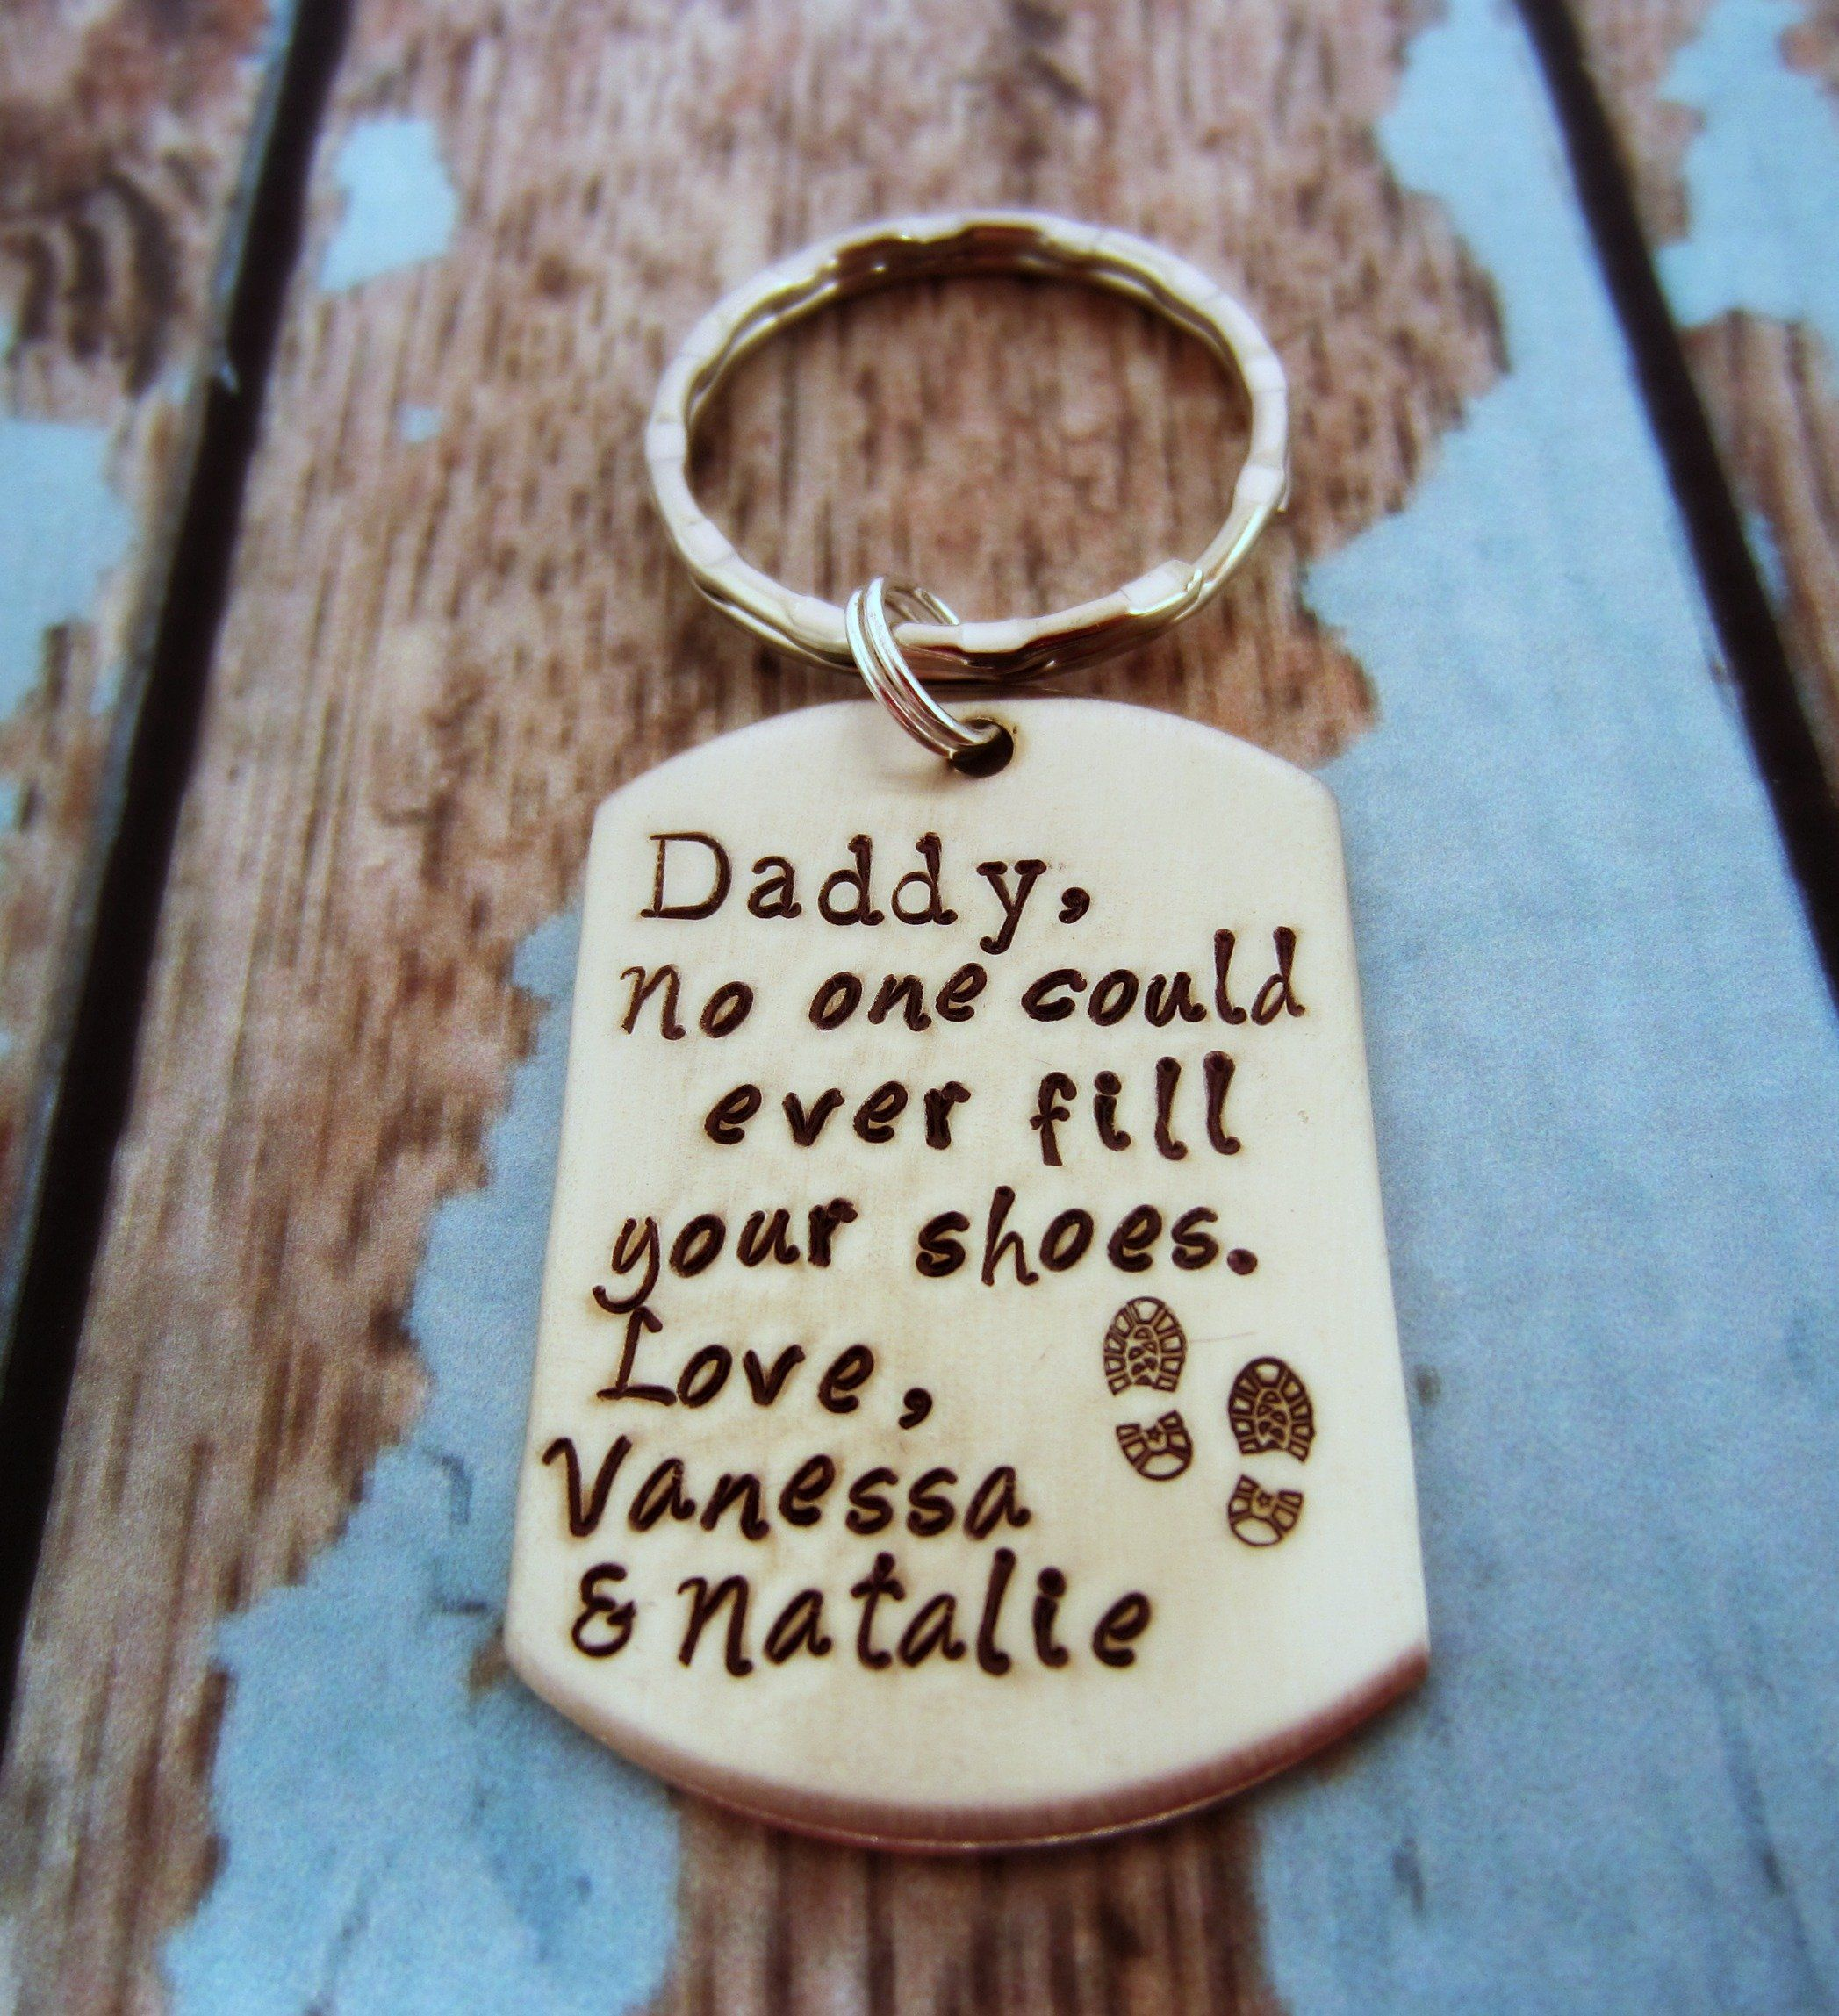 Personalized Keychain For Dad Daddy No One Could Ever Fill Your